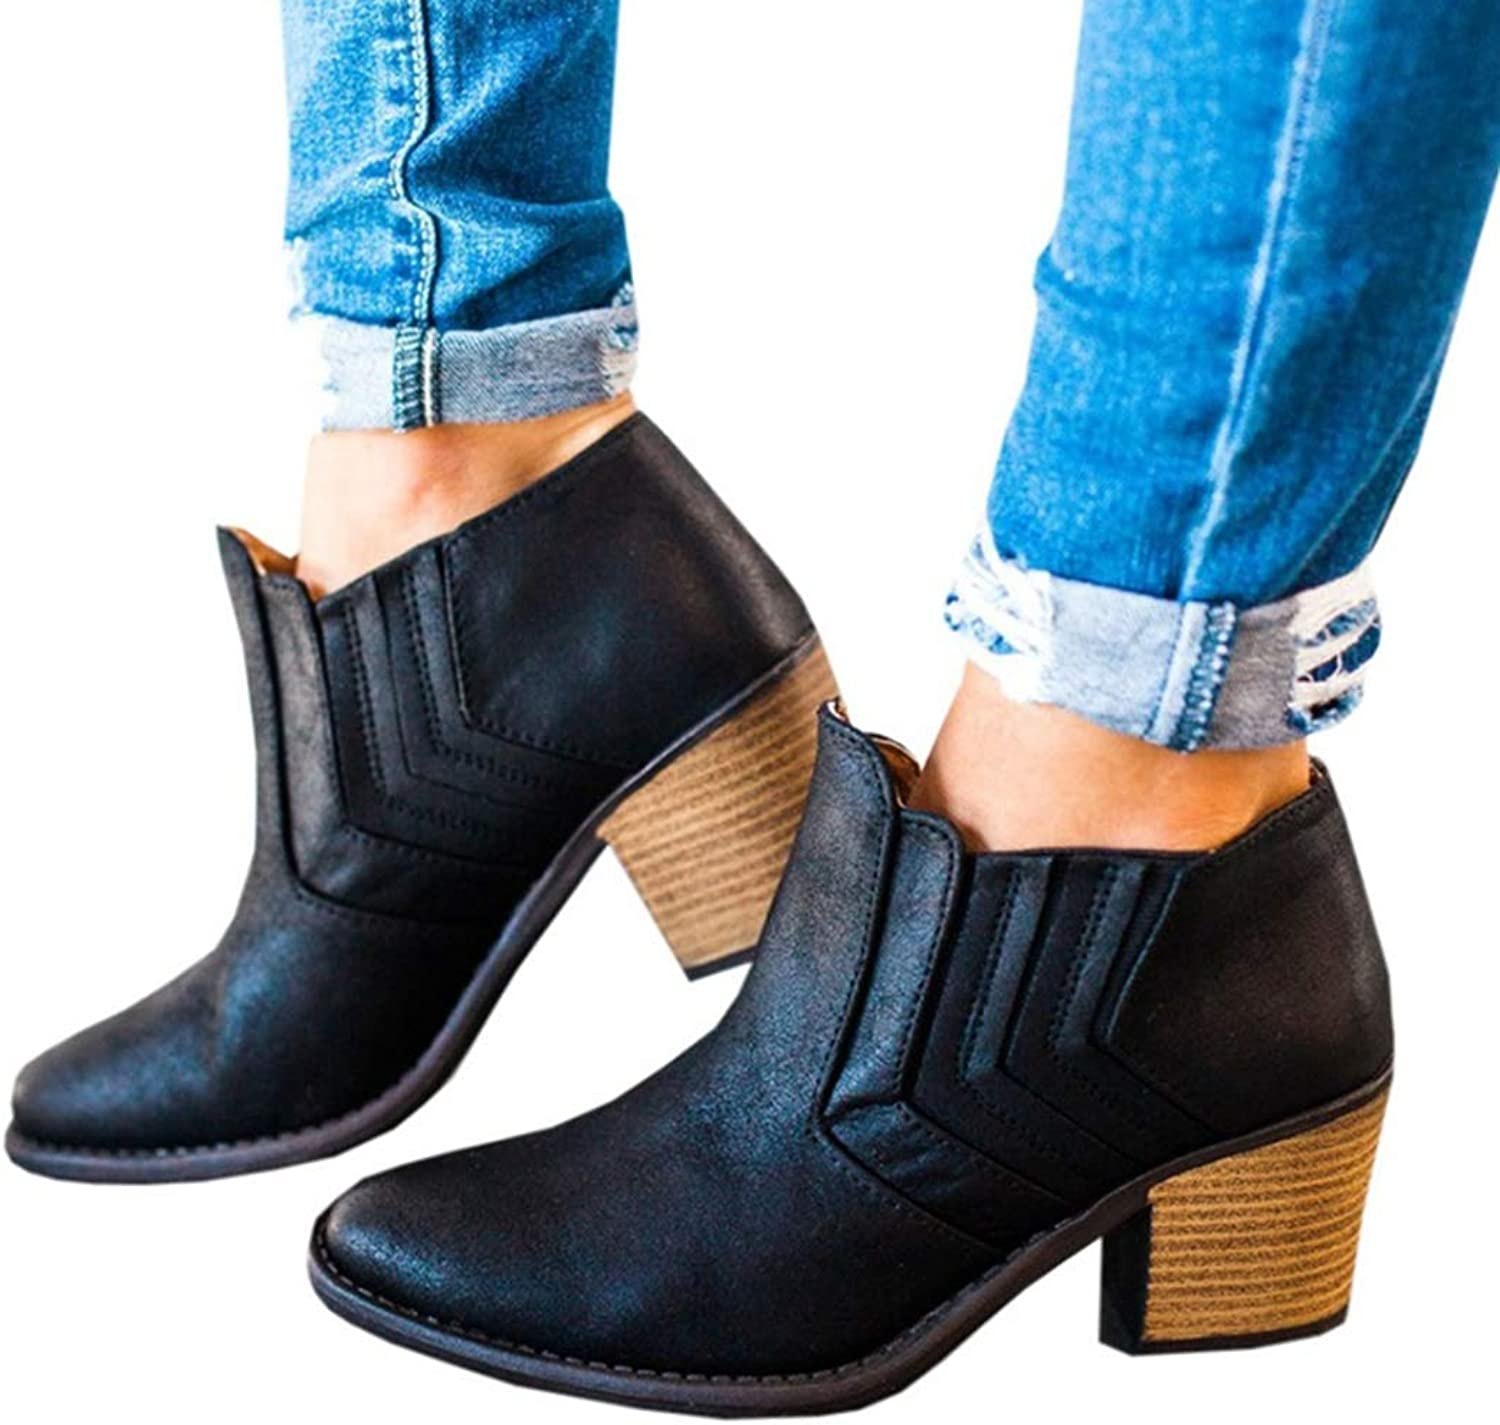 Suede Leather Ankle Boots for Woman Squared Chunky Heel Booties Slip-on Sewing Short Boots, Plus Size